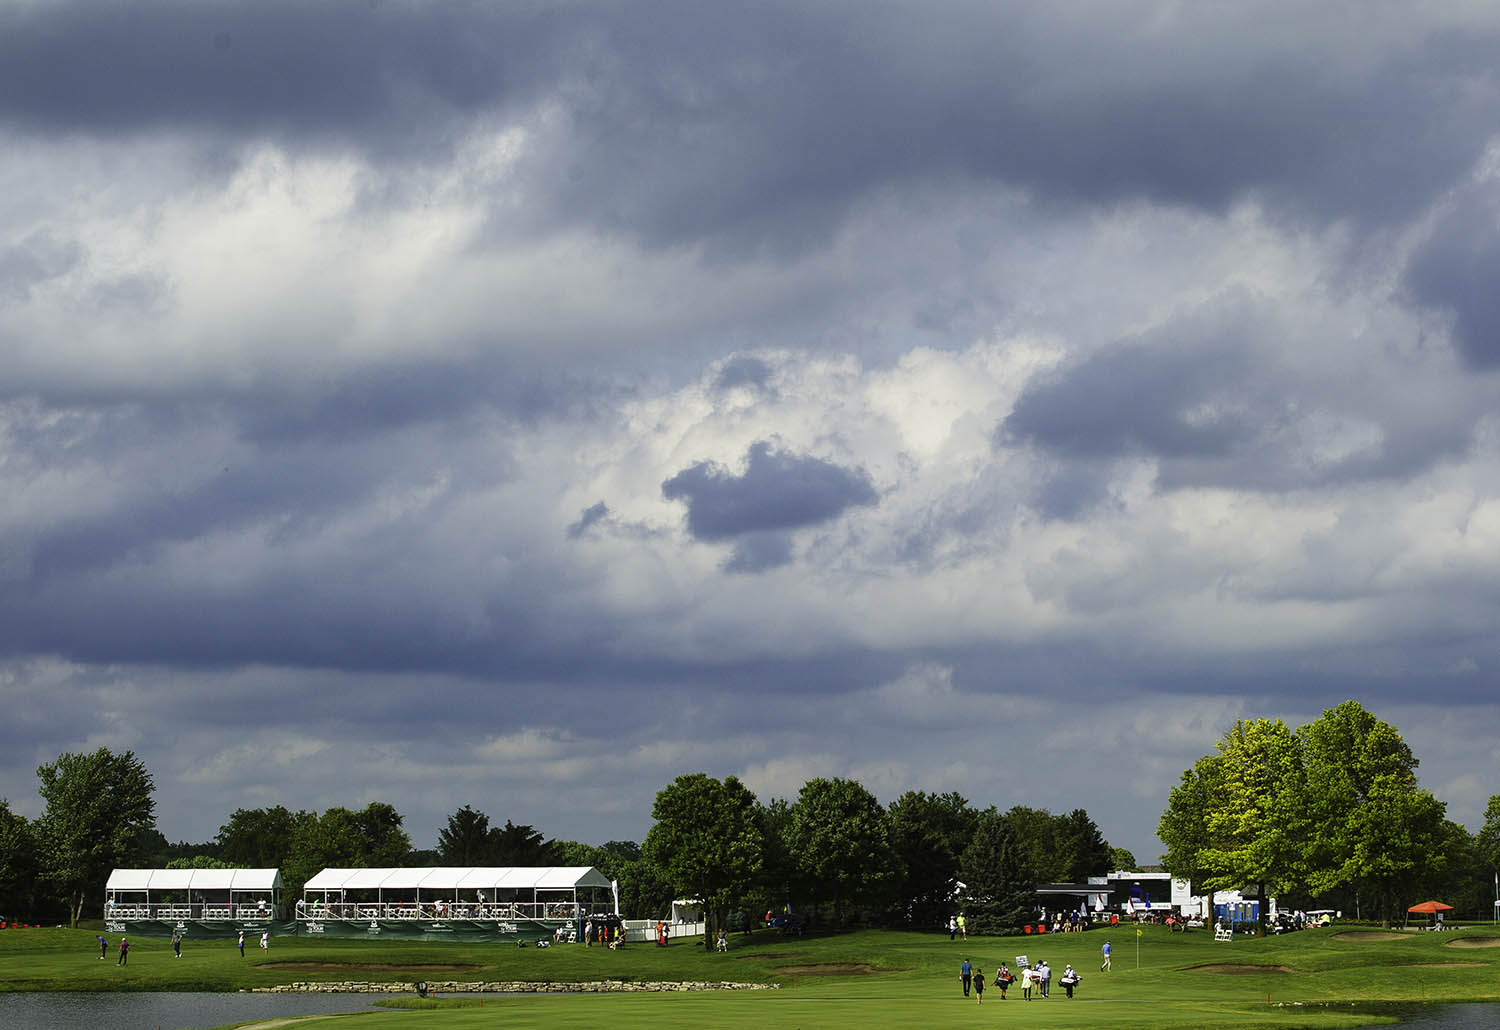 A group of golfers approaches the 9th green under dark skies during the third round of the Web.com Tour's Lincoln Land Championship presented by LRS at Panther Creek Country Club in Springfield, Ill., Saturday, June 15, 2019. Despite two inches of rain in the morning, the afternoon rounds stayed mostly dry.  [Ted Schurter/The State Journal-Register]